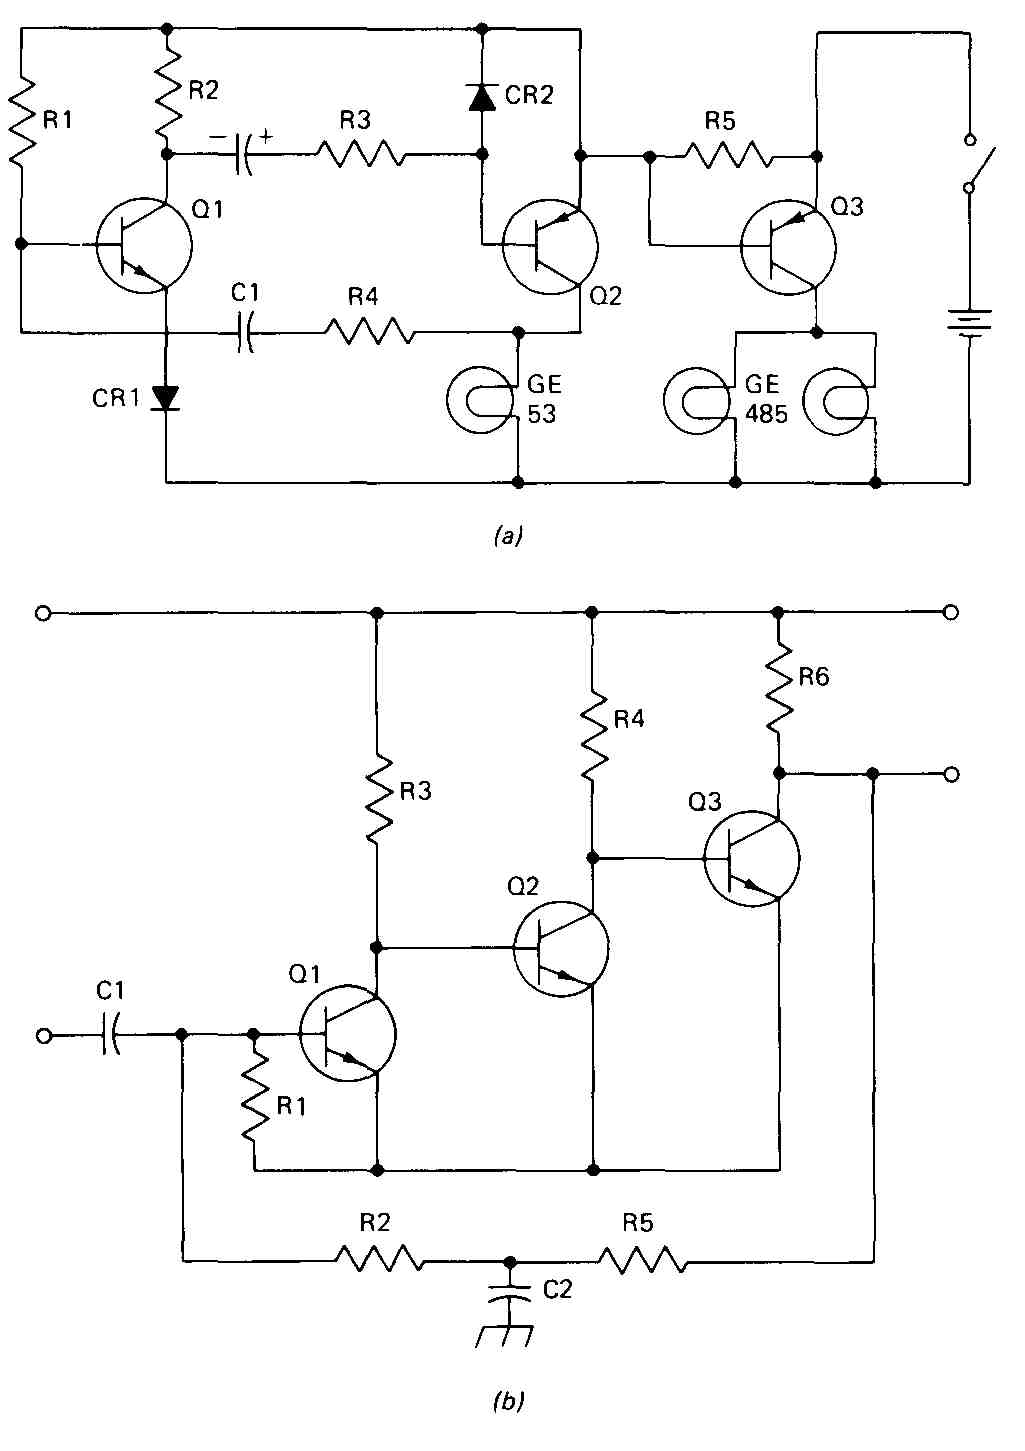 Pdf Electronic Ballast Wiring Diagram - Wiring Diagram Val on ballast wire, ballast ignitor schematic, a c system diagram, electronic ballast circuit diagram, hid ballast diagram, ballast replacement diagram, ballast installation, ballast connection diagrams, ballast system, cnc machine control diagram, engine cooling system diagram, ballast cross reference, fluorescent light ballast diagram, ballast regulator, fluorescent fixtures t5 circuit diagram, ballast tank diagram, ballast control panel, trailer light diagram, ballast resistor purpose,